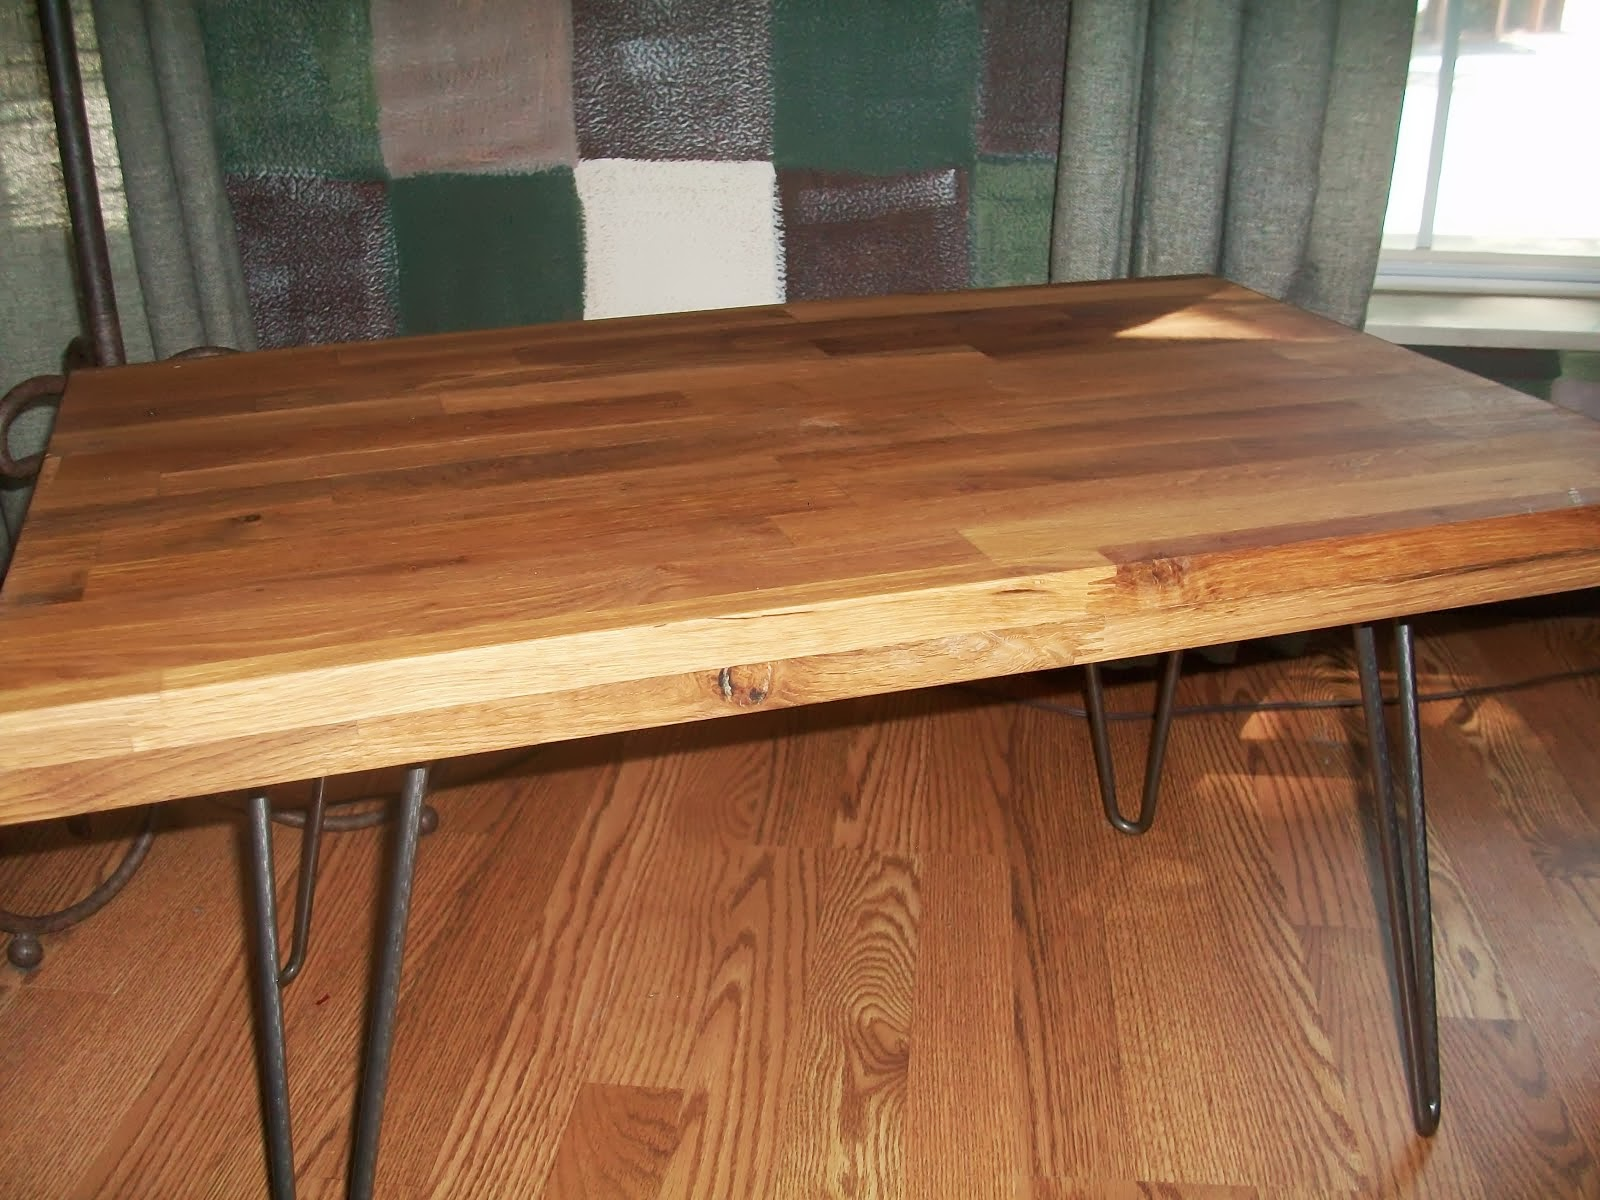 Butcher Block Table with butcher block stand with cutting board countertop